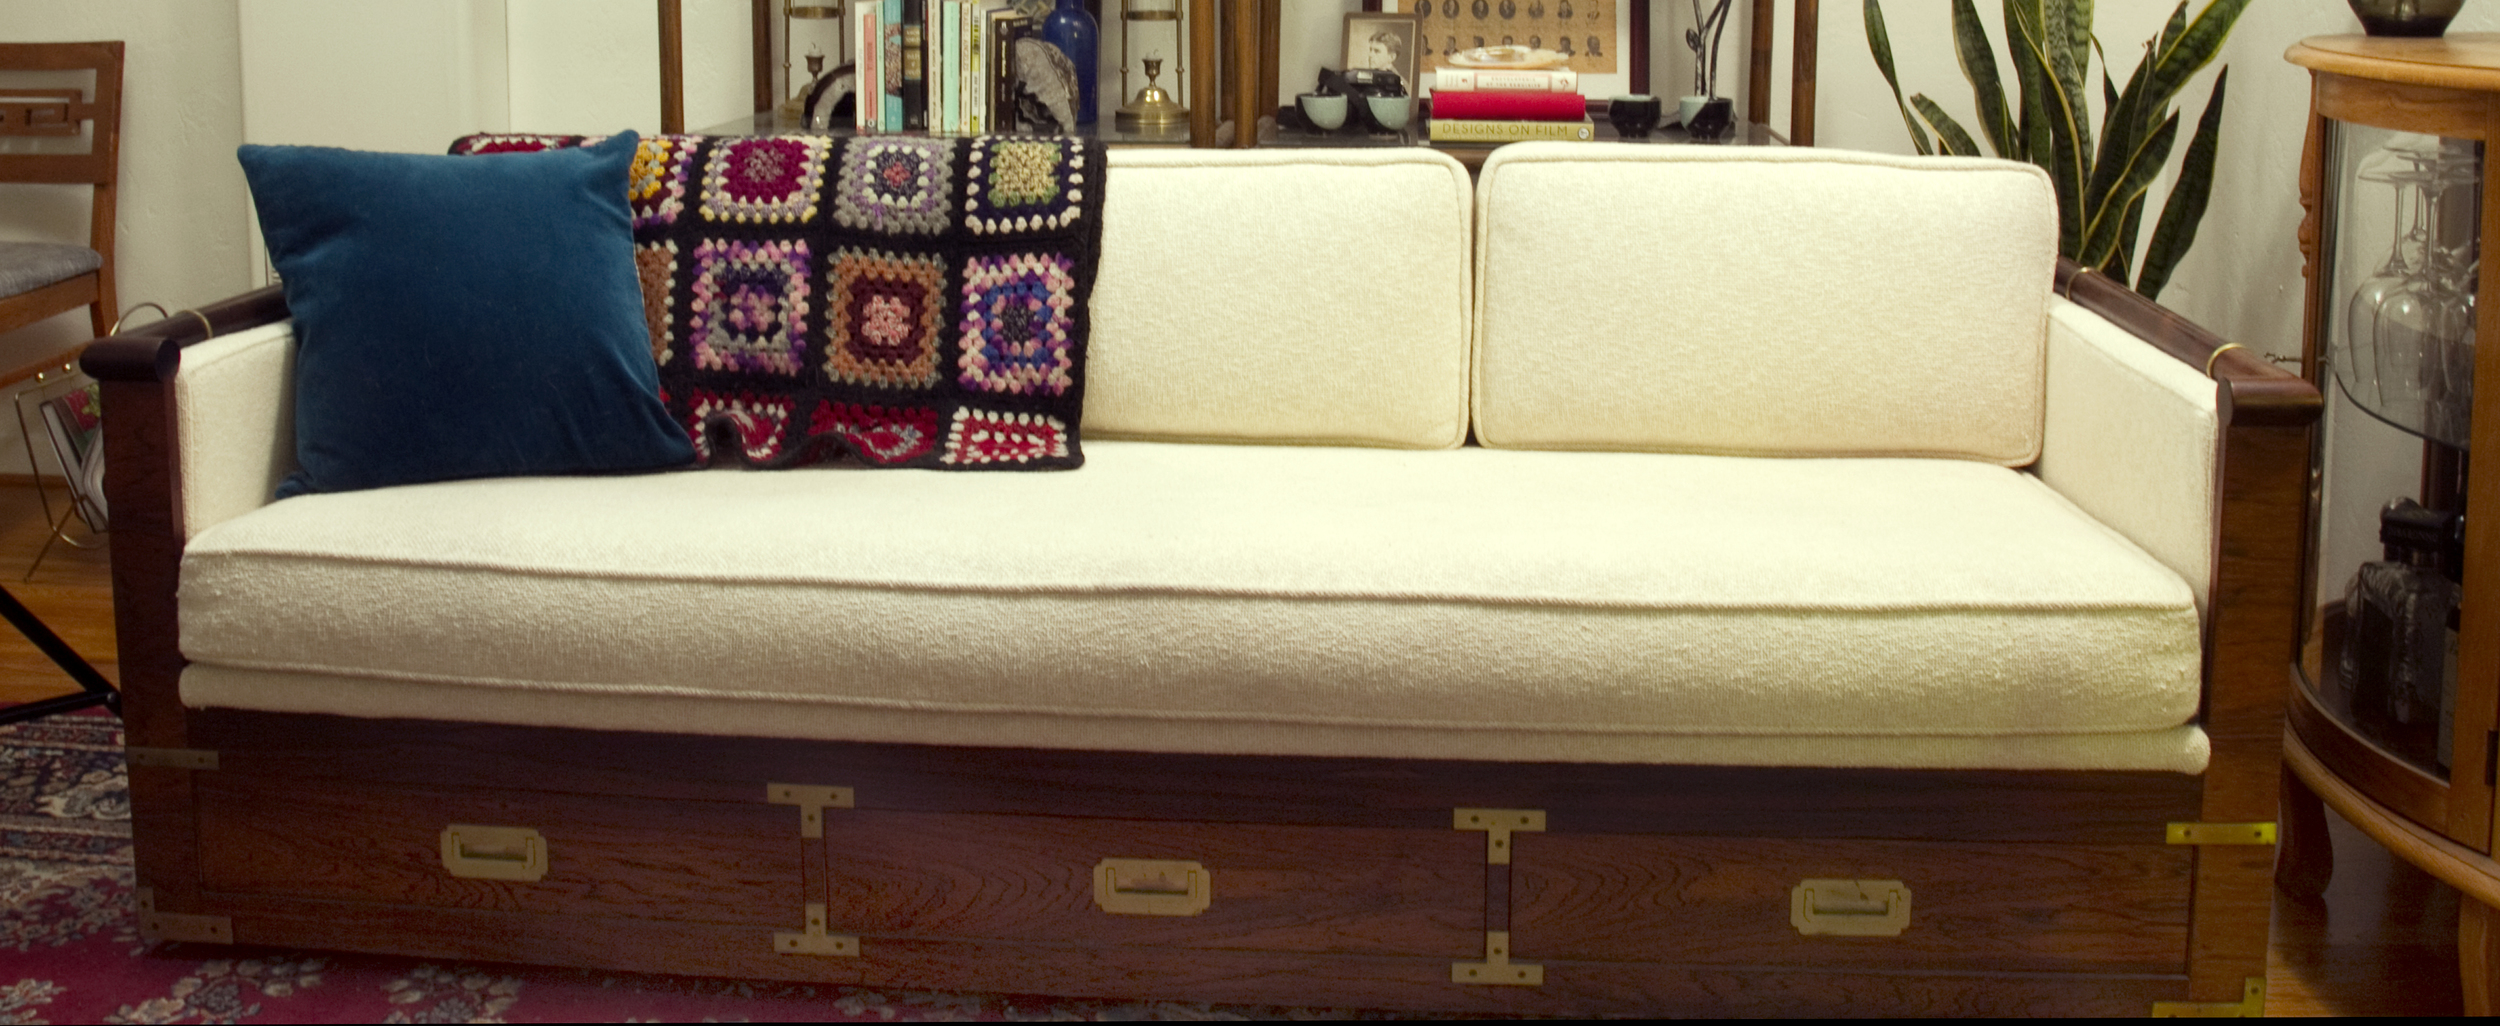 Emma's living room sofa.  Rosewood campaign sofa with brass detail.